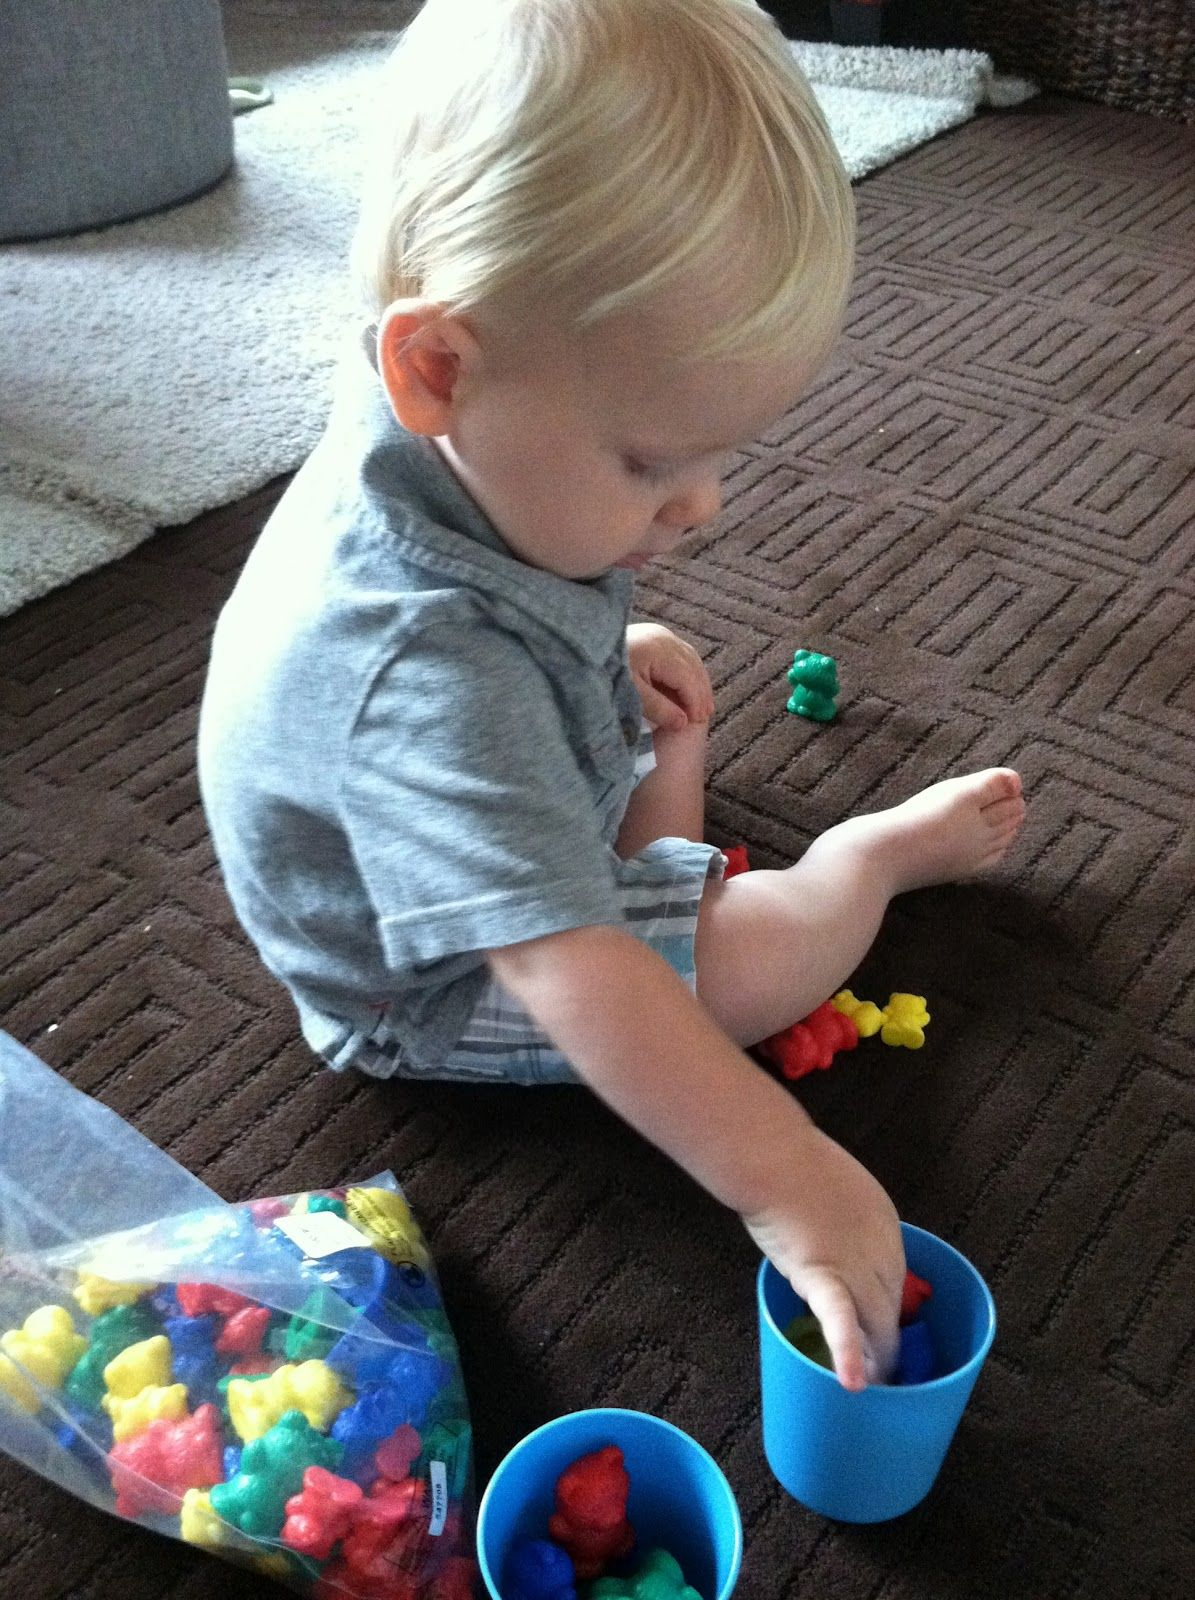 The Activity Mom: Learning with Your 15 Month Old